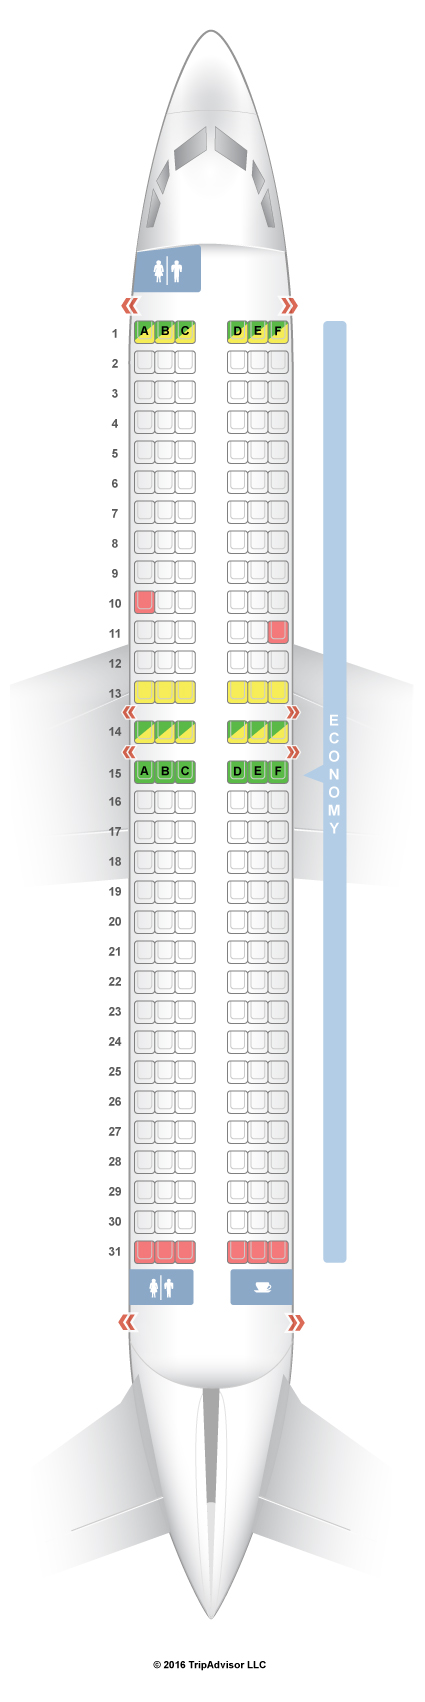 Seatguru Seat Map Norwegian Air Shuttle Boeing 737 800 738